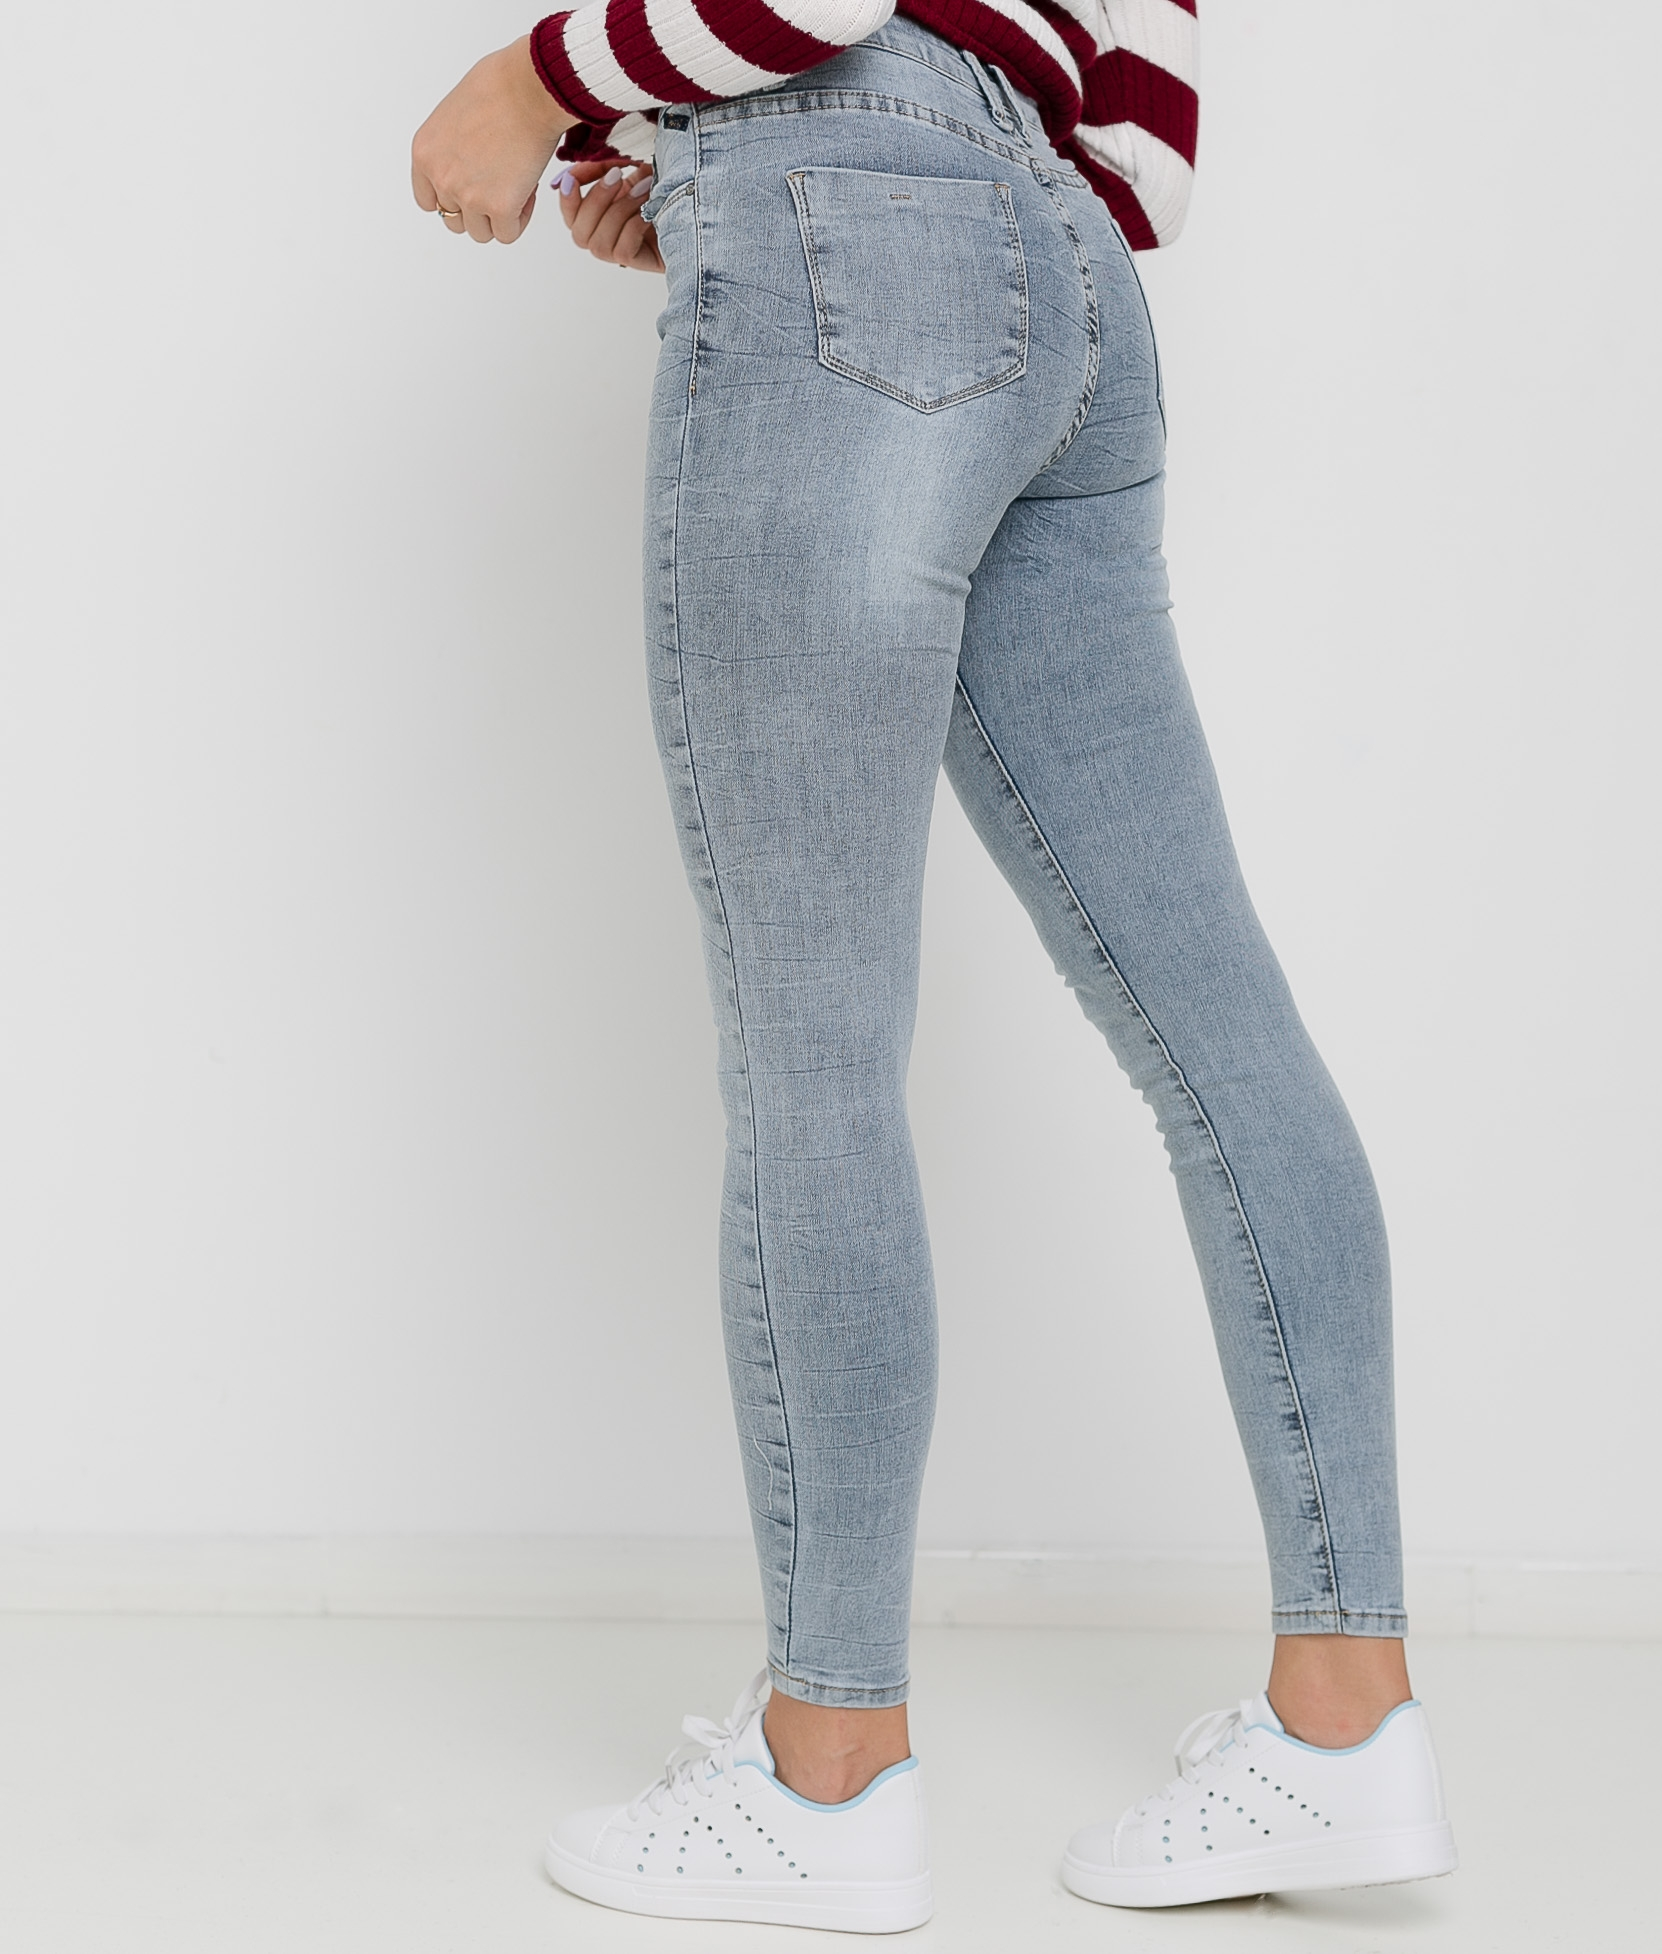 PANTALON MENBUR - DENIM GRIS